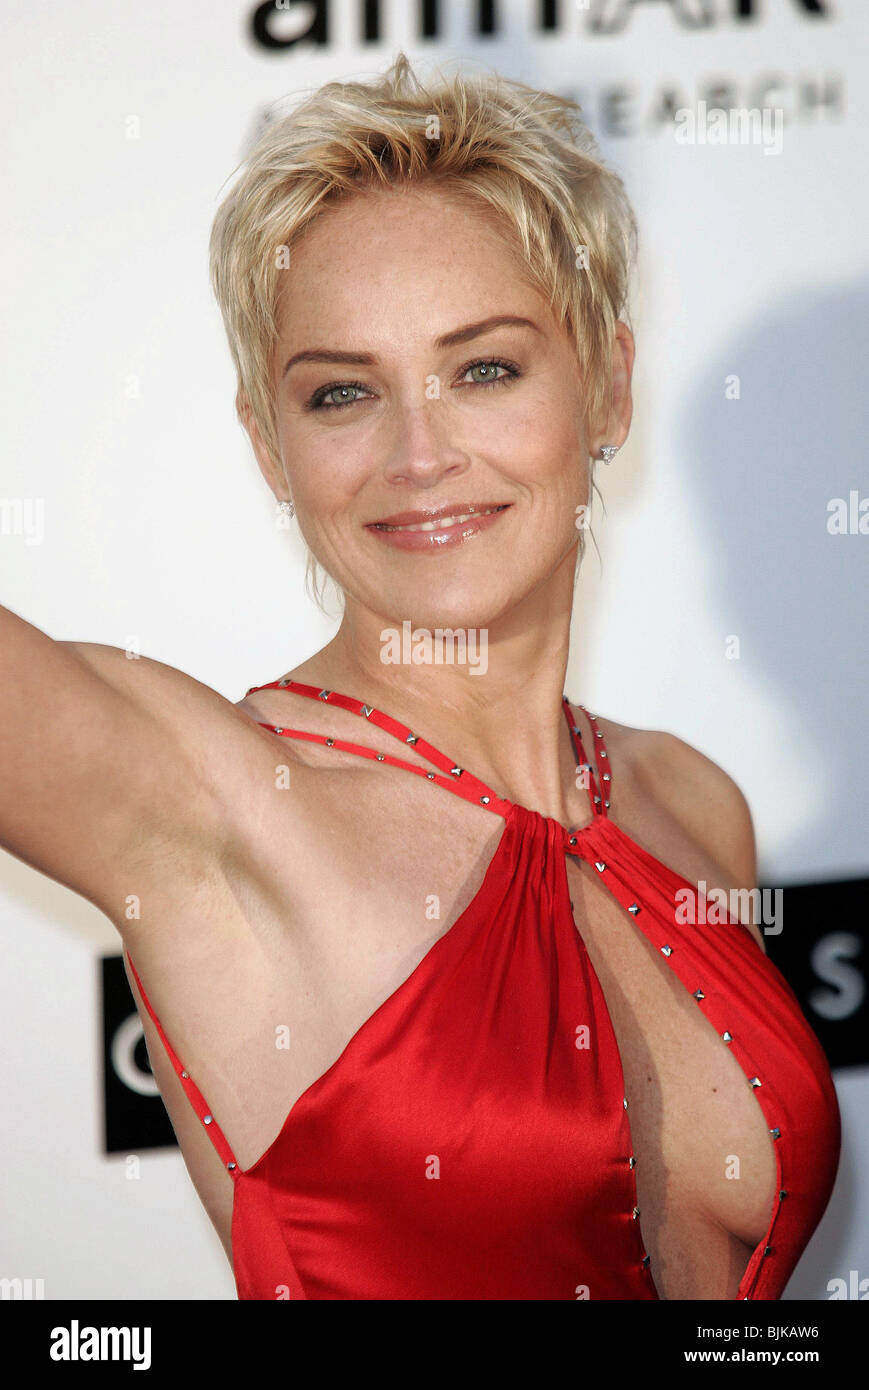 sharon stone cannes film festival 2004 cannes france 20 may 2004 stock photo royalty free image. Black Bedroom Furniture Sets. Home Design Ideas